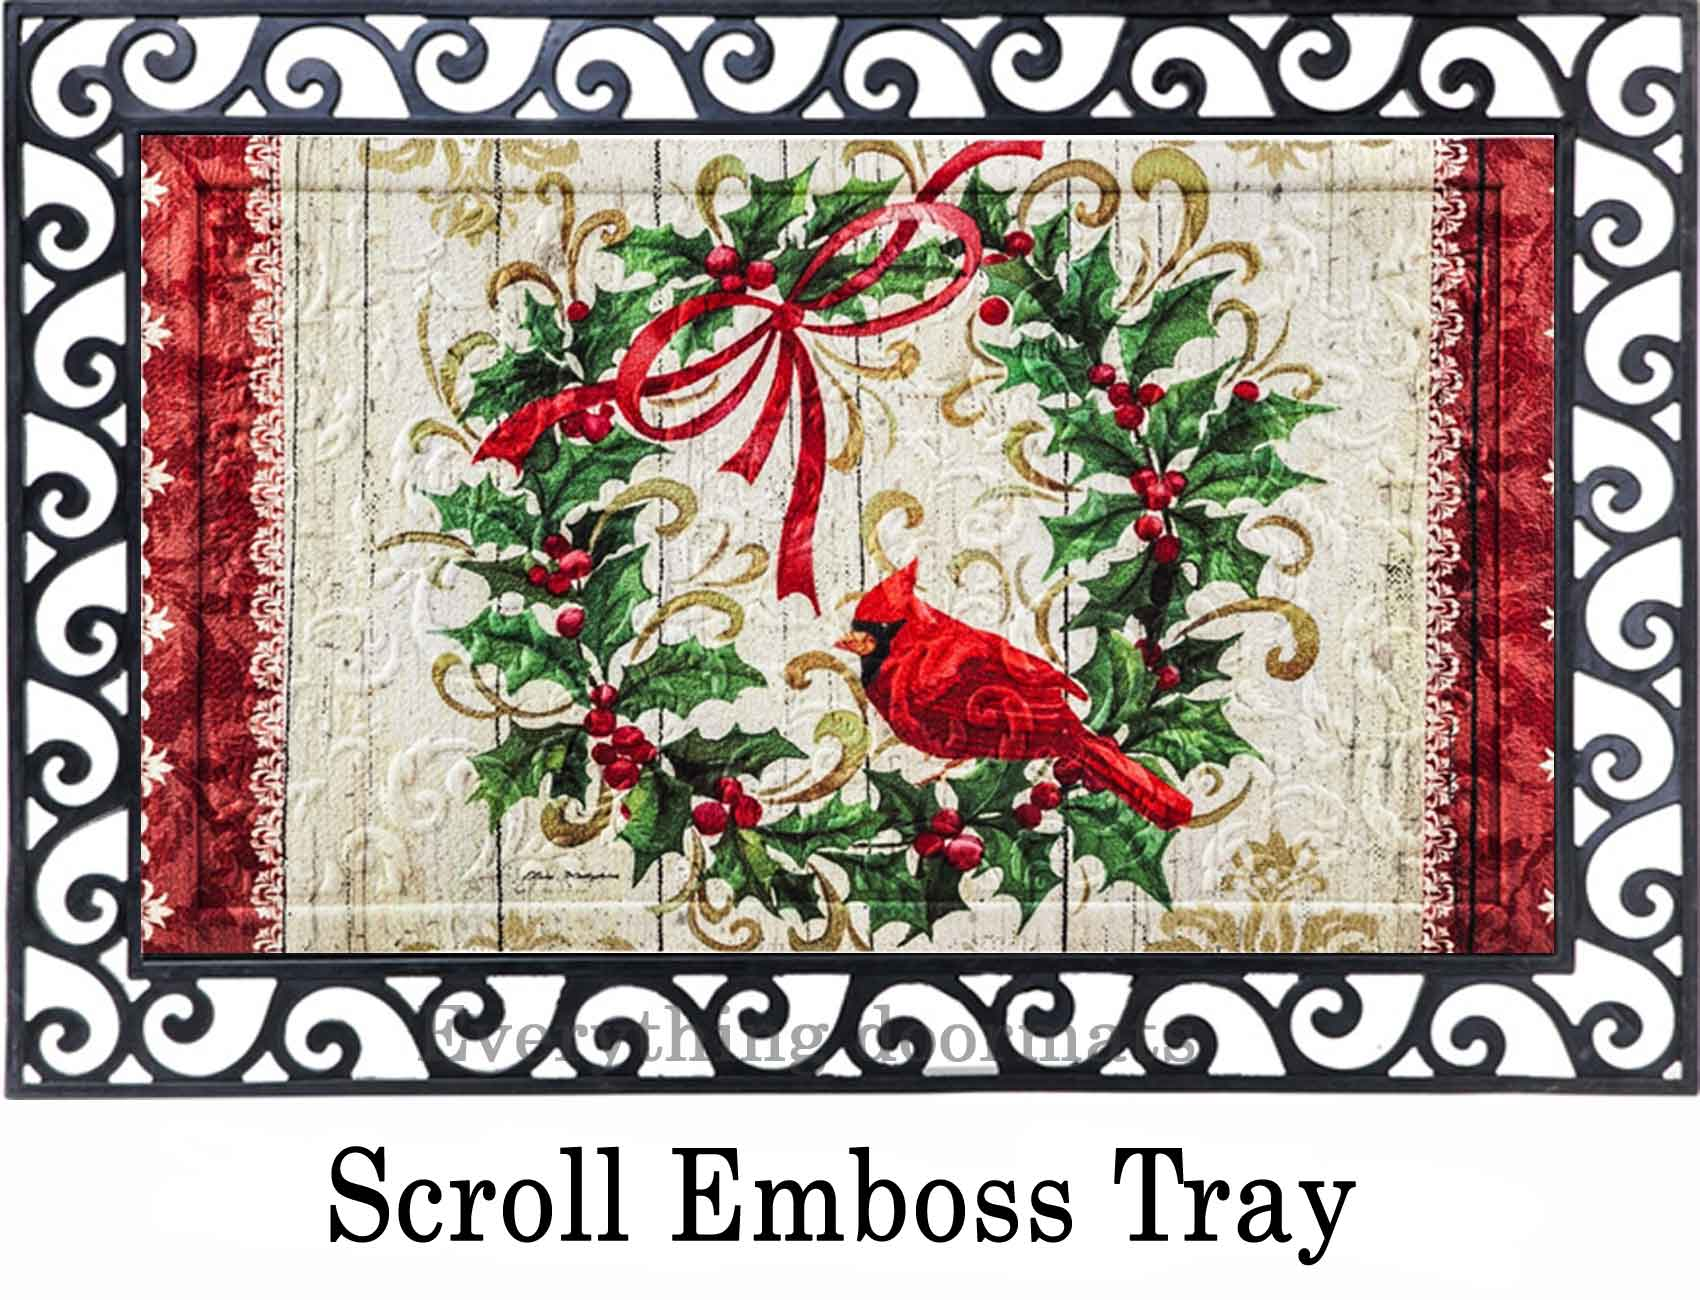 sc 1 st  Everything Doormats & Floral Embossed Cardinal Holly Wreath Doormat - 19 x 30